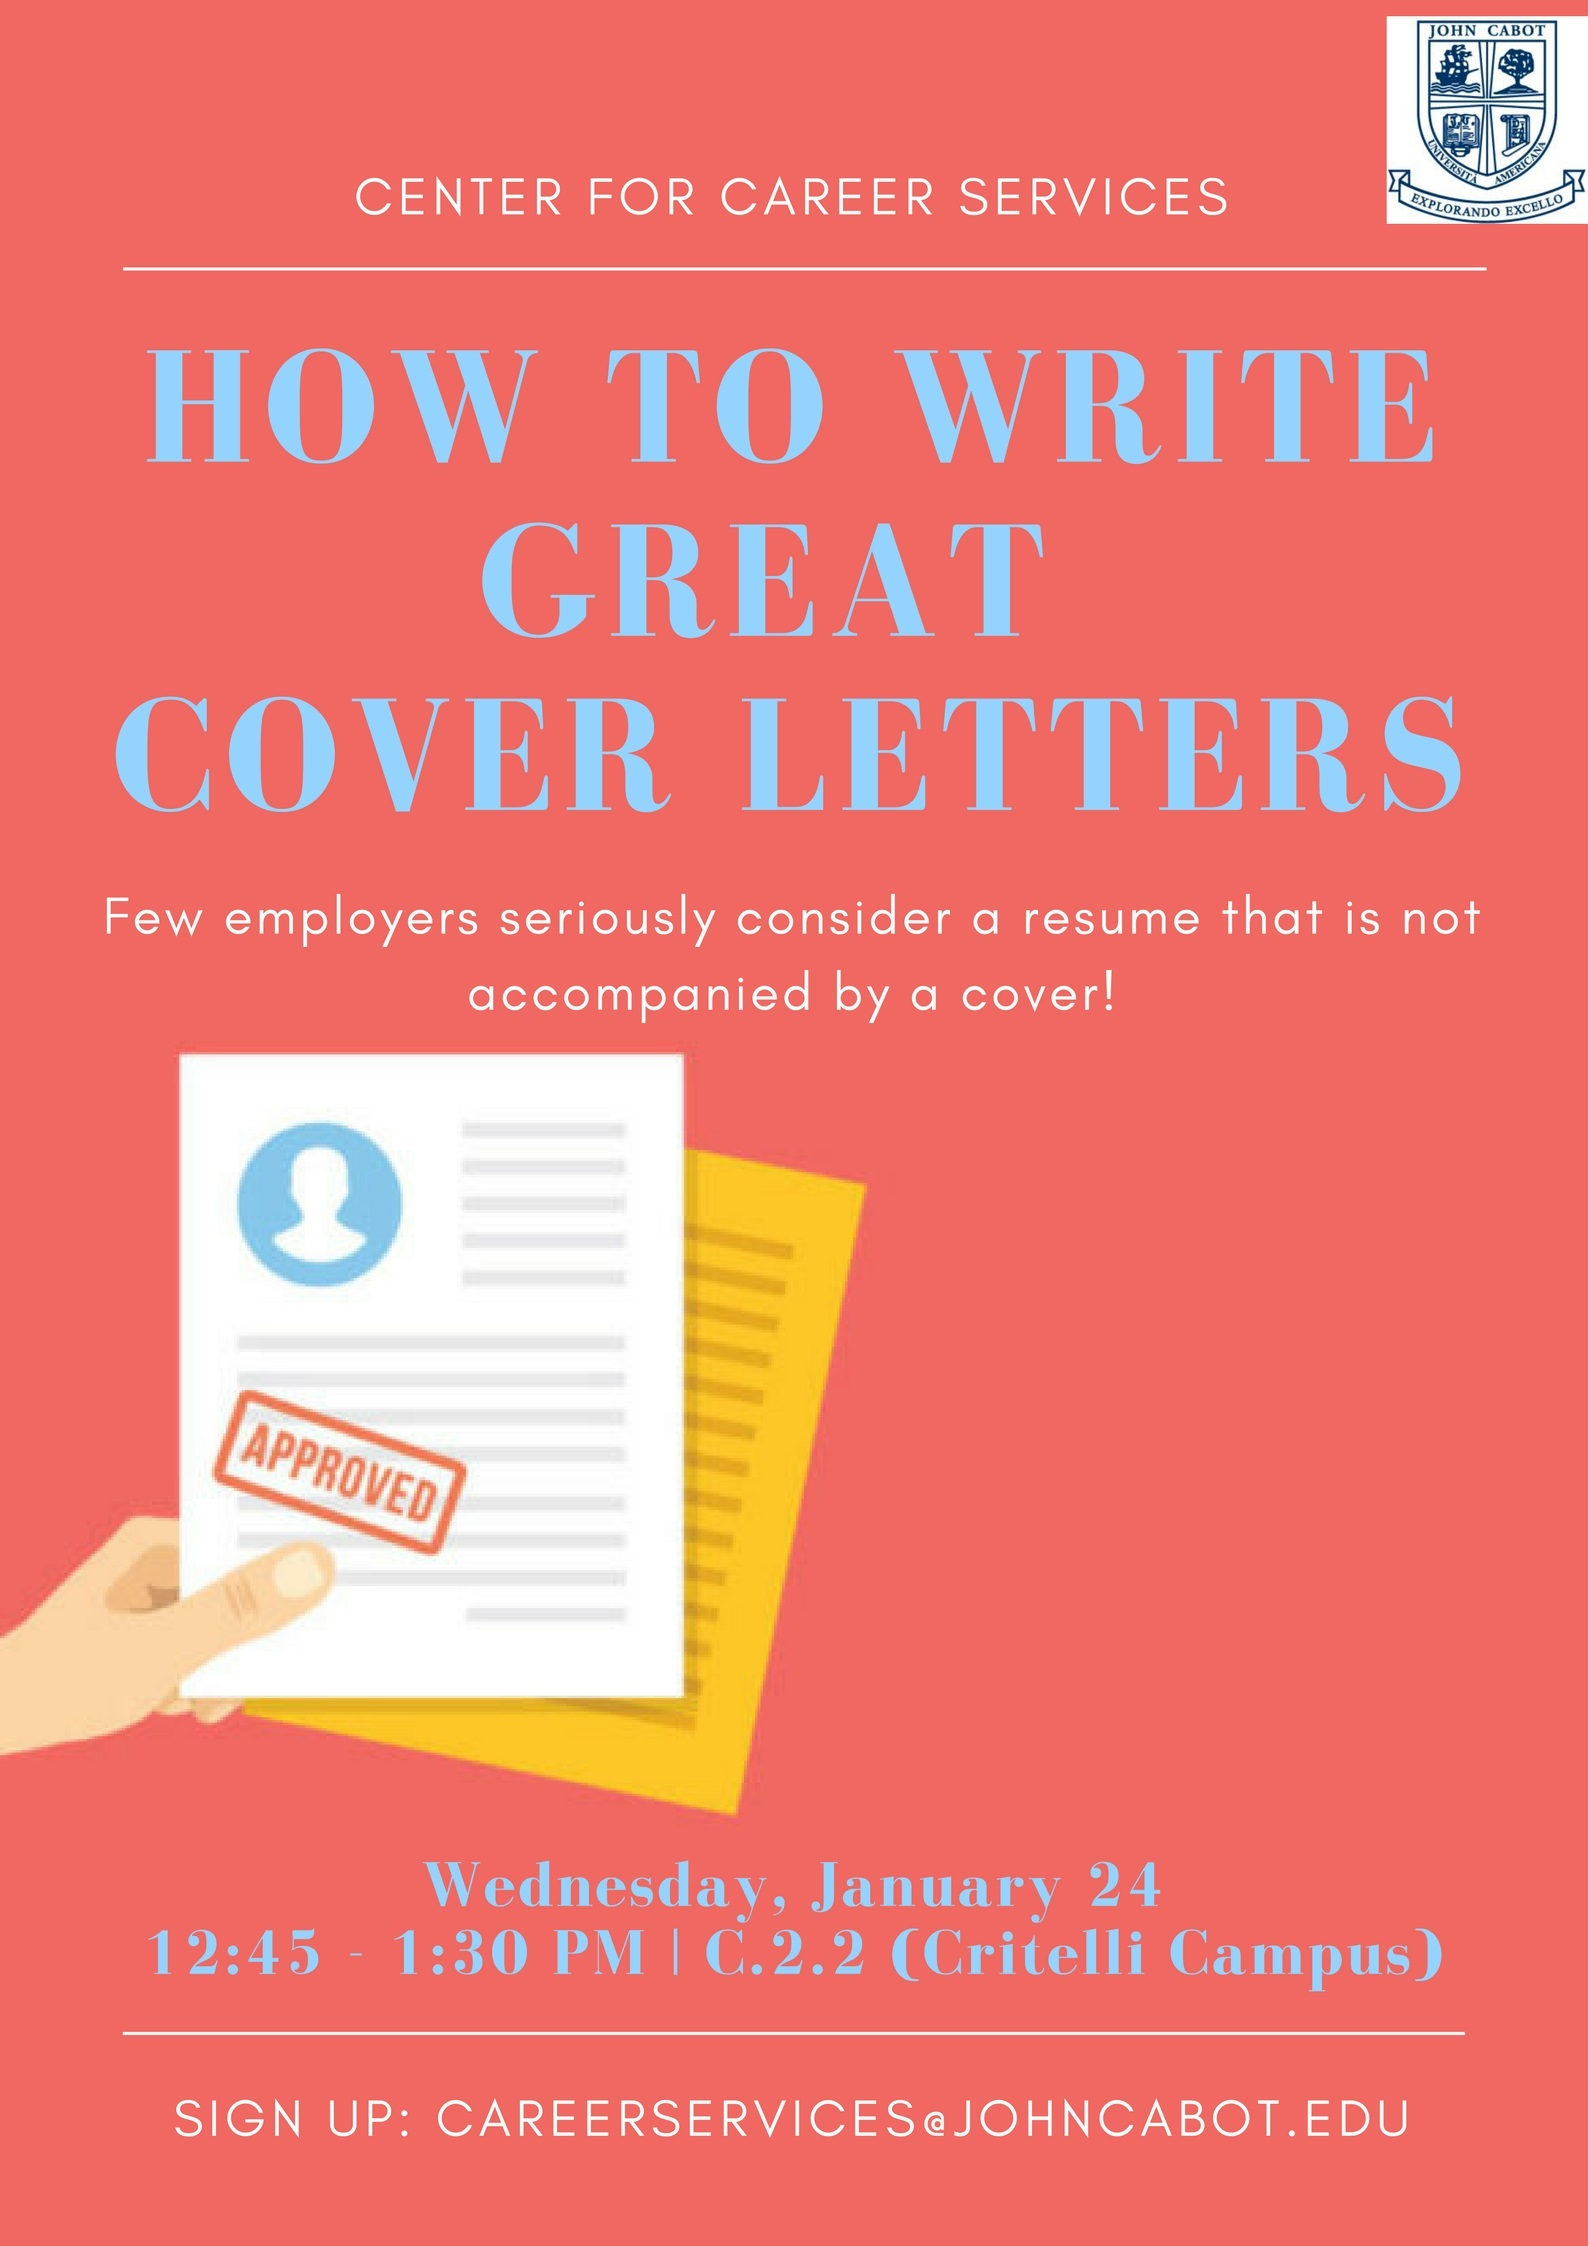 how to write great cover lettersjpg - How To Write Great Cover Letters